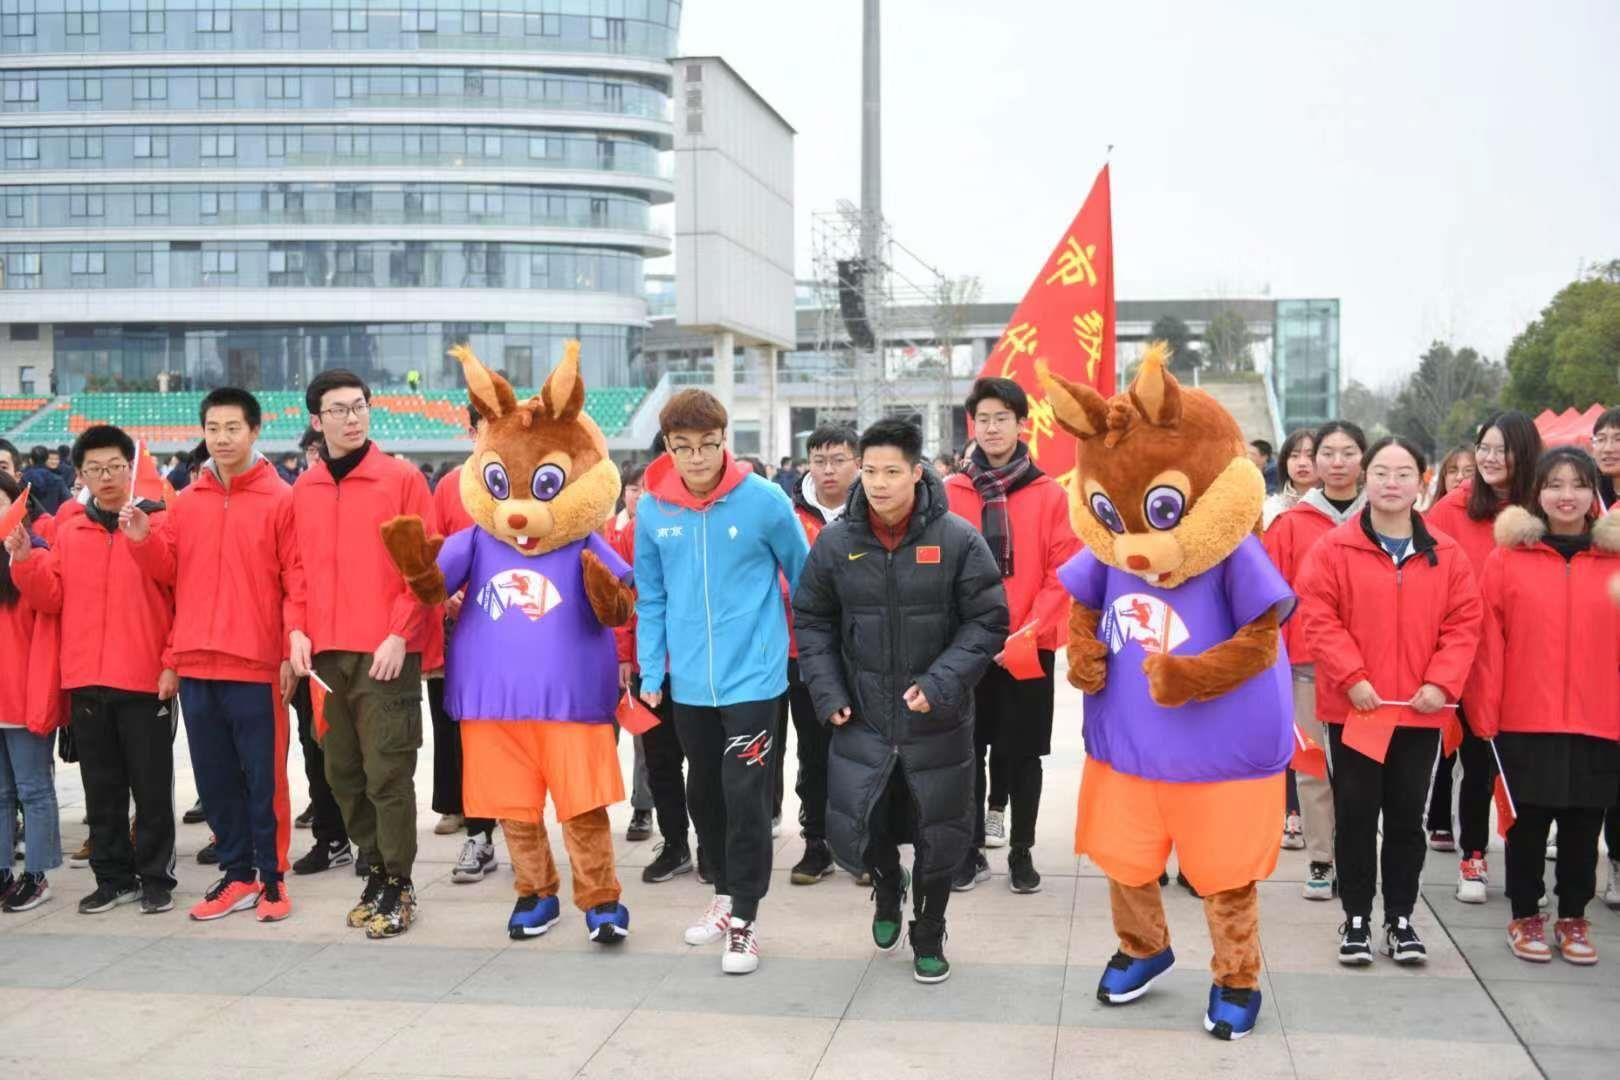 Chinese sprint star Su Bingtian led more than 4000 runners at the 38th edition of the annual New Year Run in Nanjing, the host city of the next World Athletics Indoor Championships.